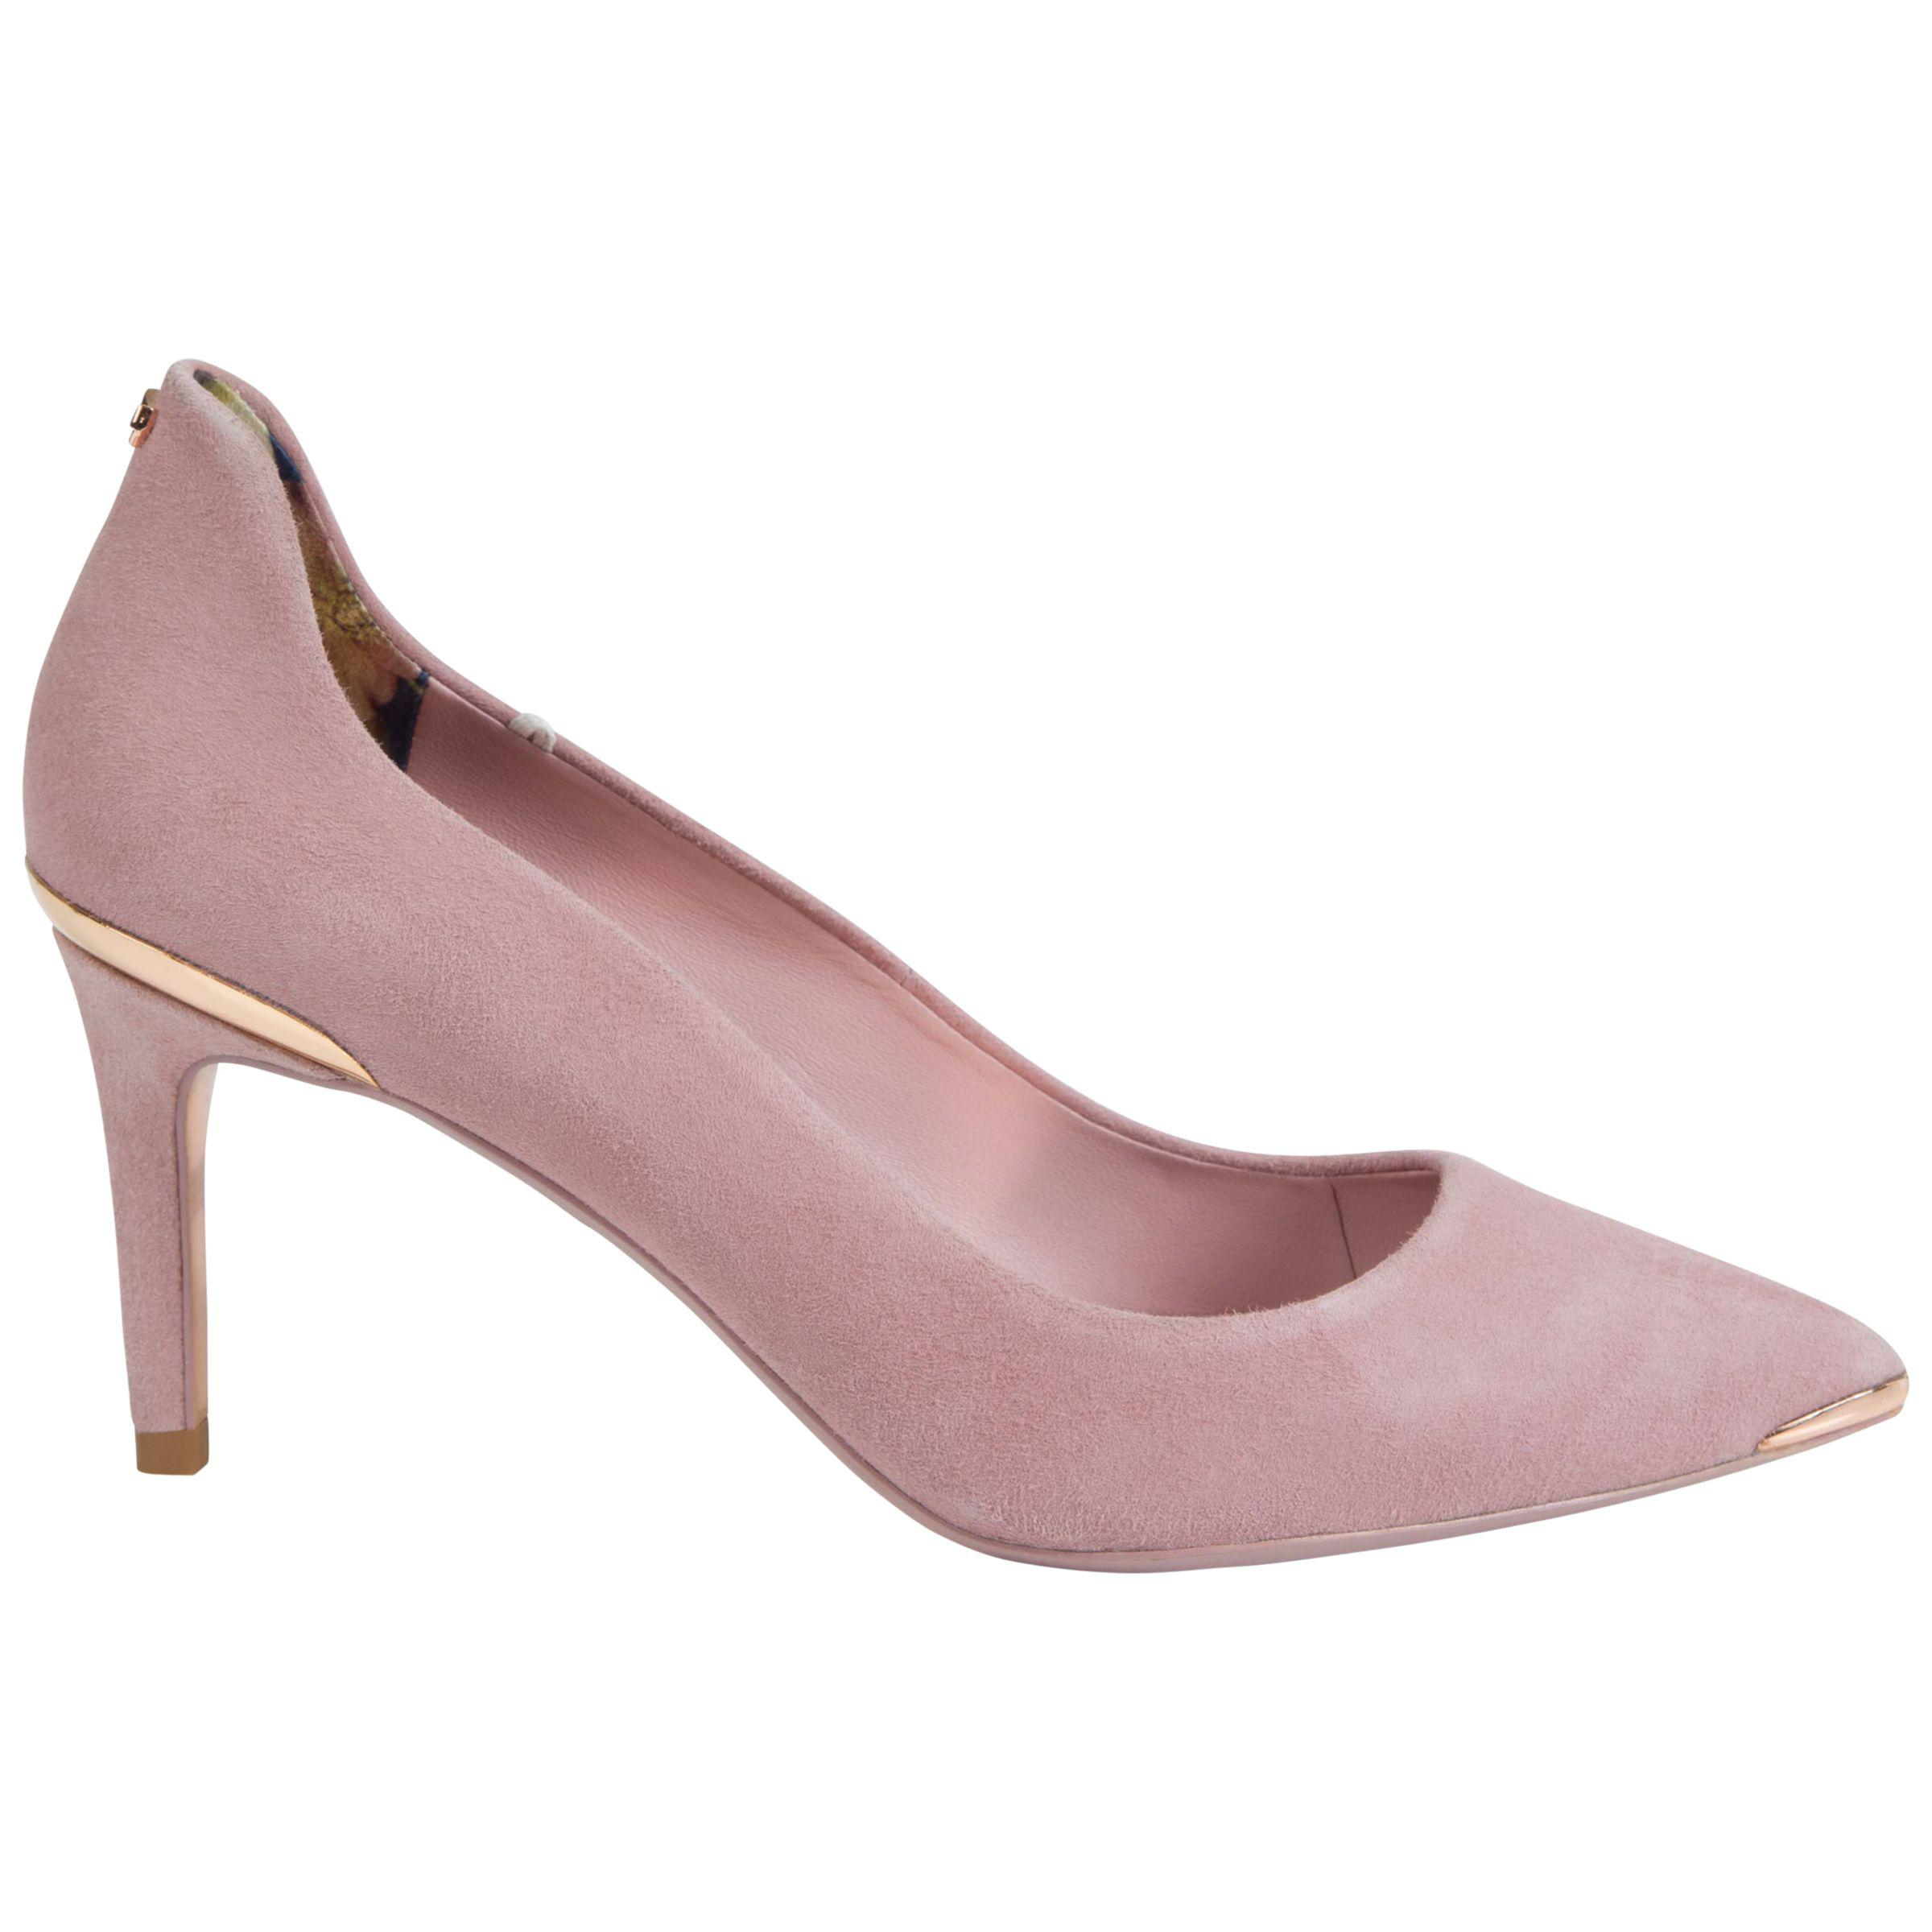 f4377cce8 Ted Baker Vyixyns Suede Court Shoes in Pink - Lyst